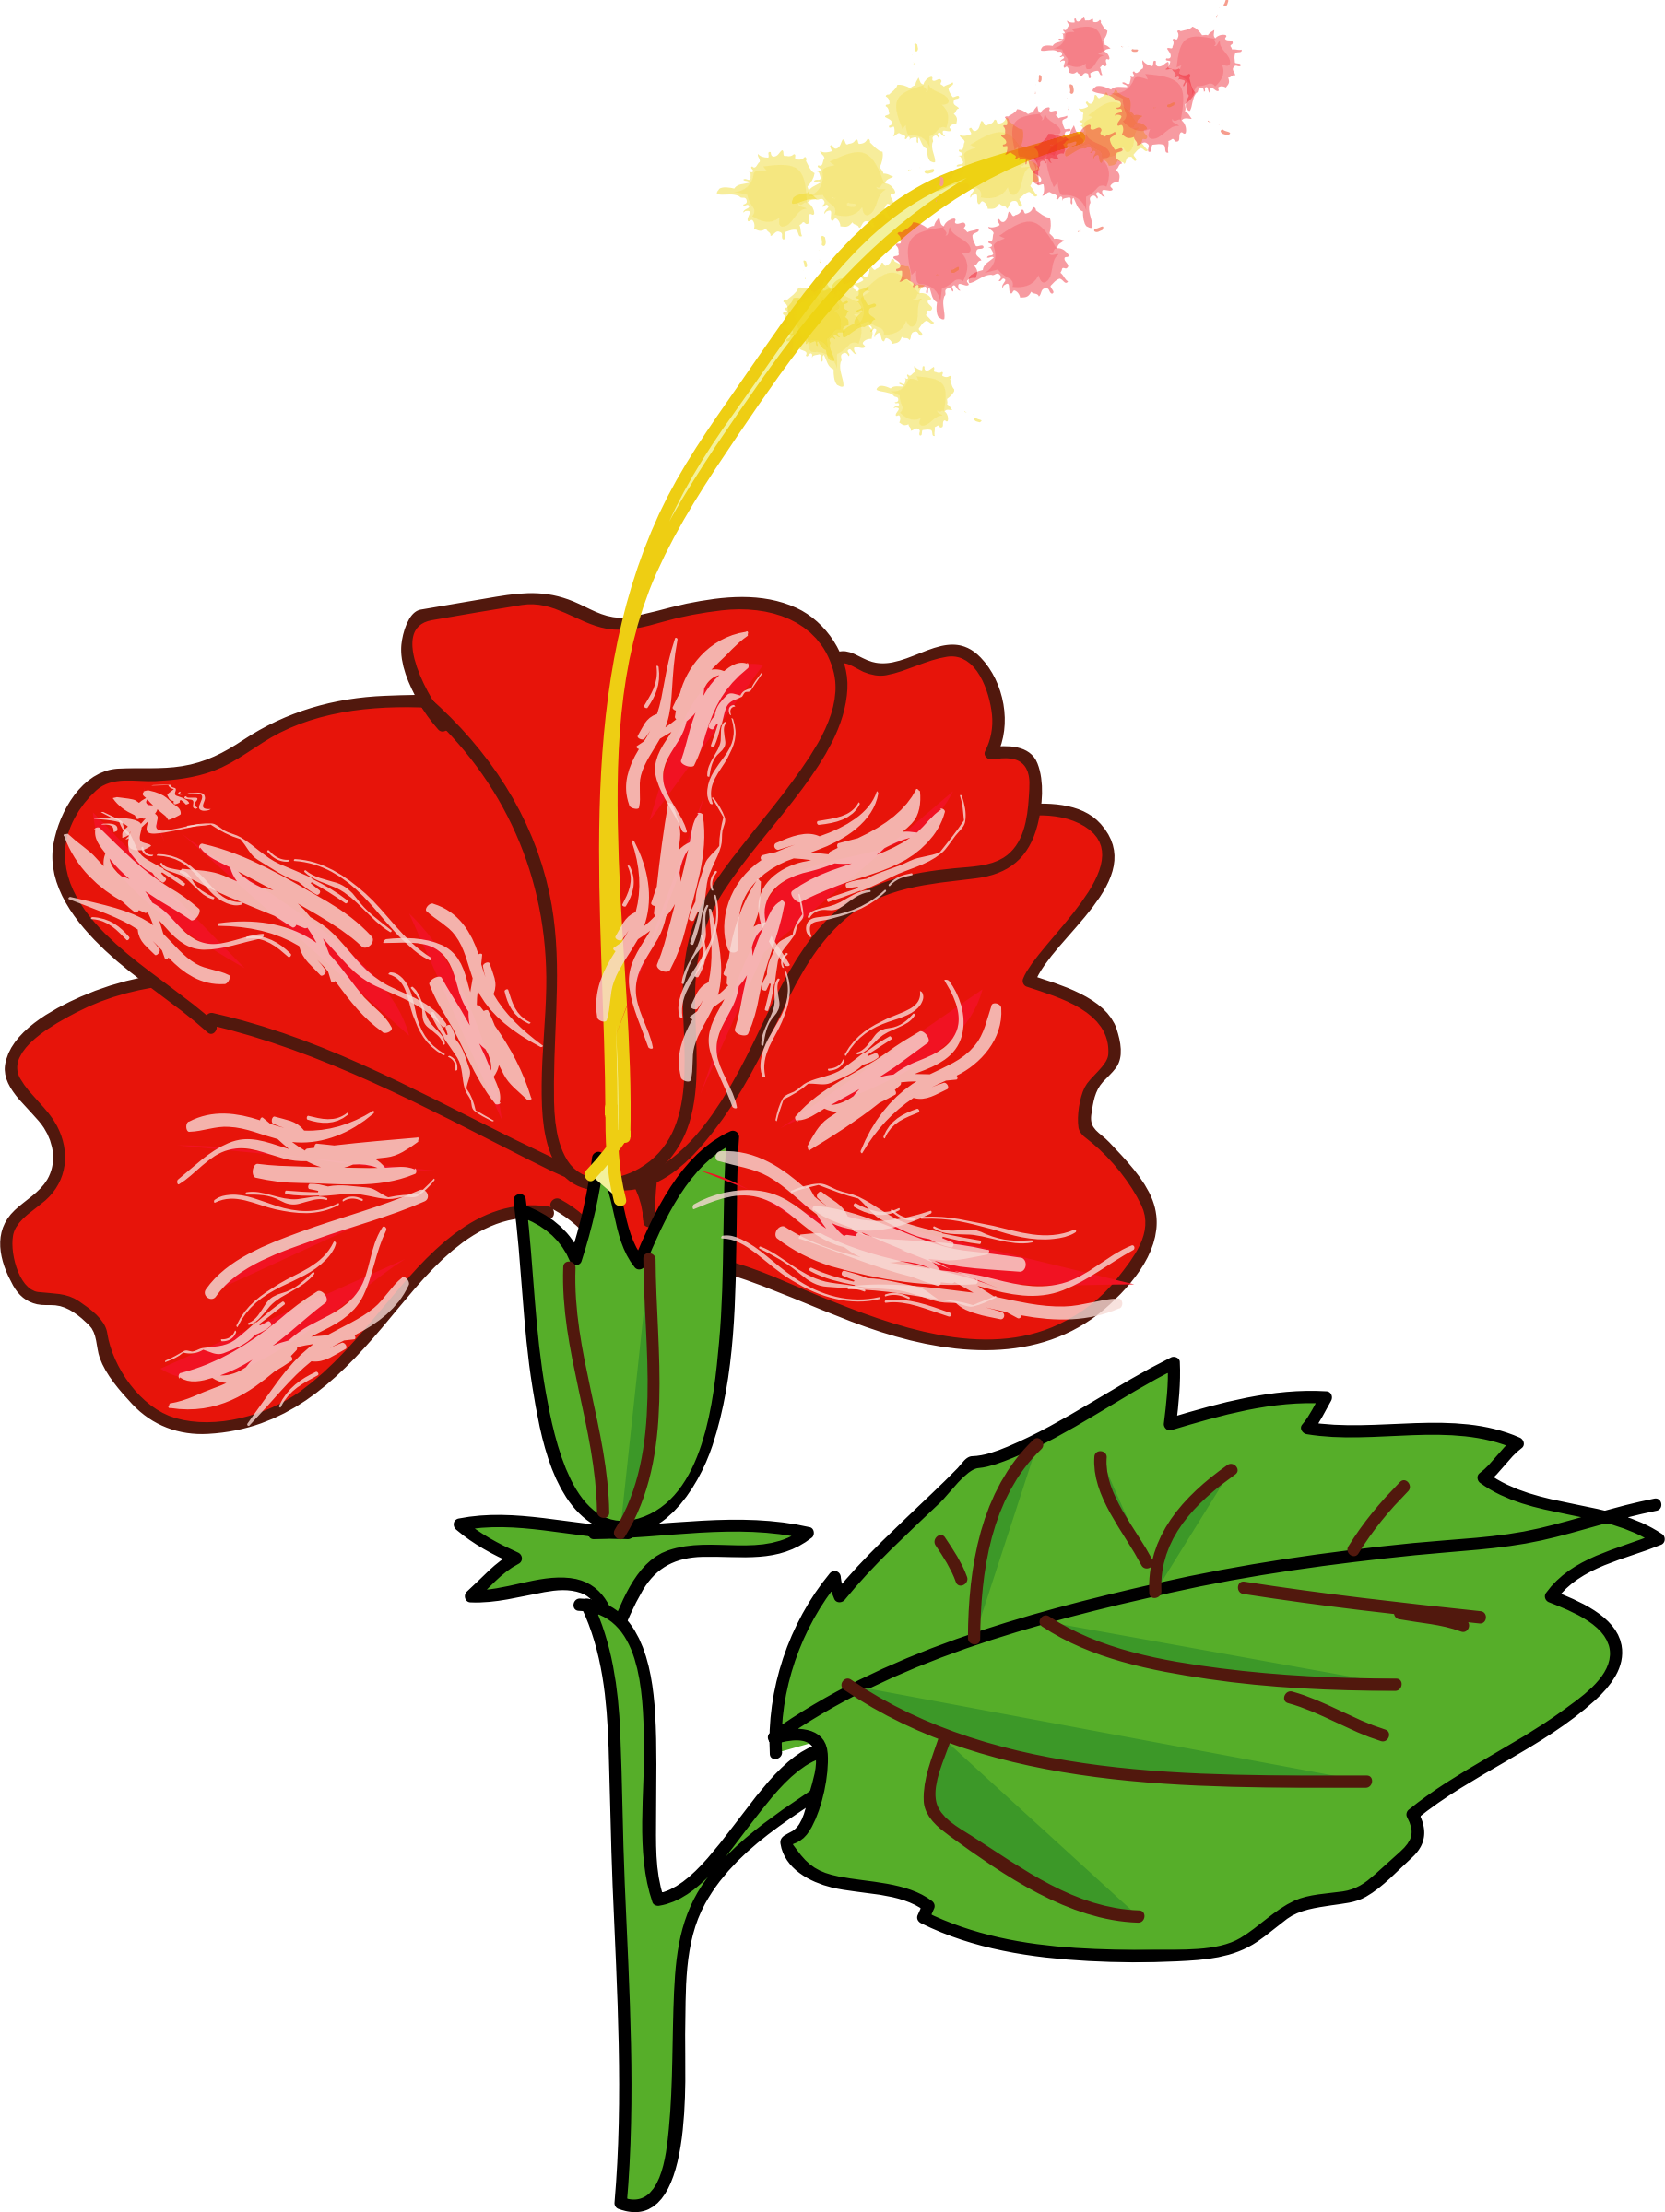 Hibiscus clipart flower real. Big image png